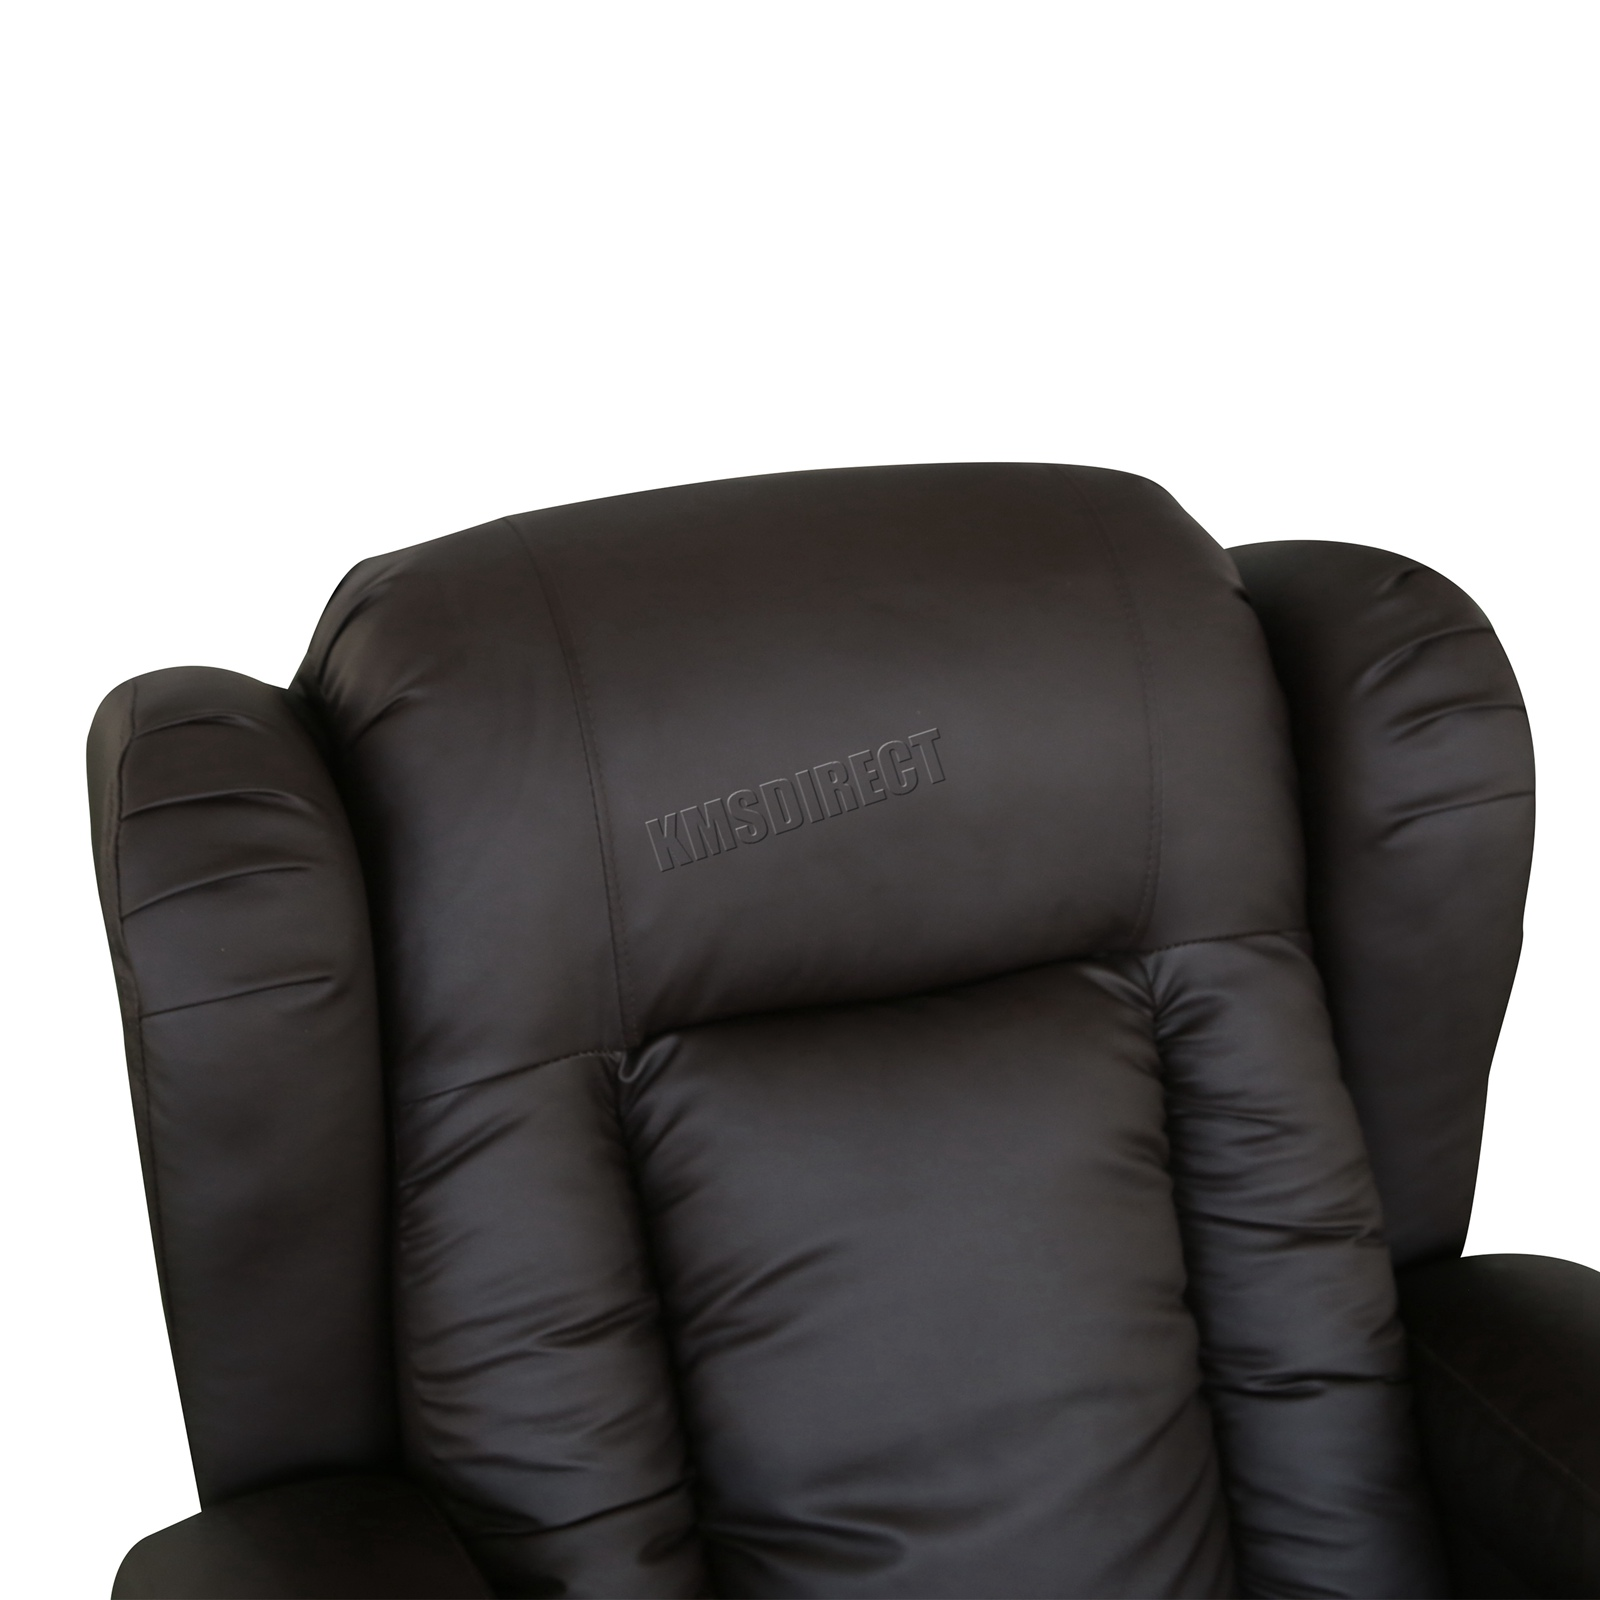 WESTWOOD-Leather-Recliner-Armchair-Swivel-Heated-chair-Massage-Gaming-Chair thumbnail 32